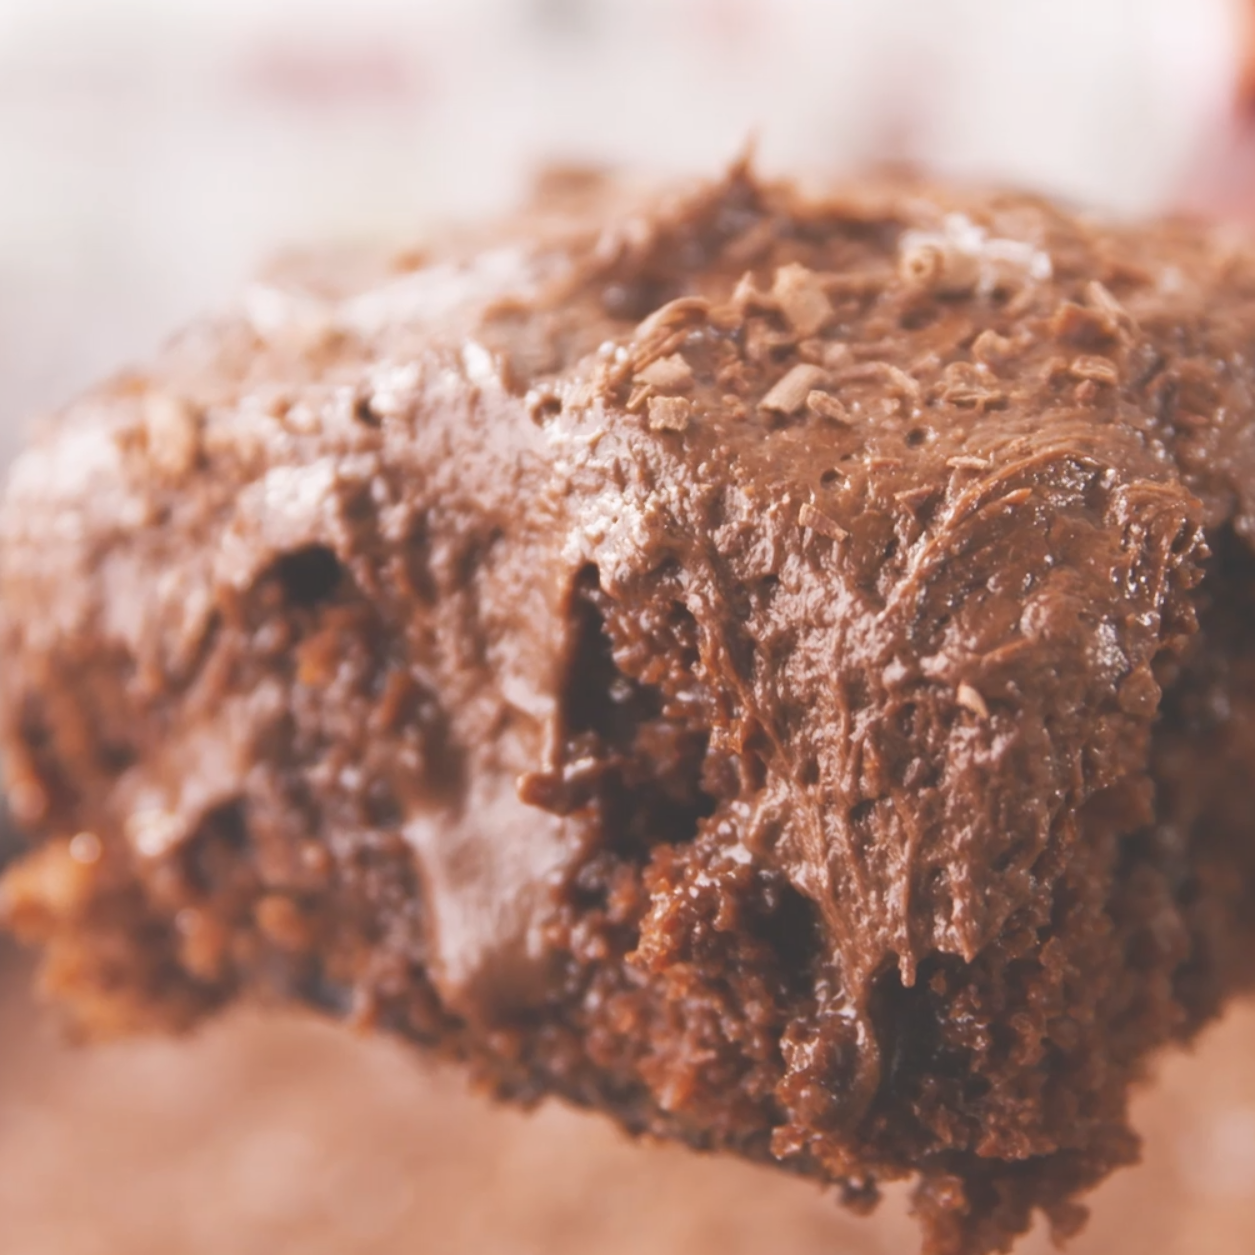 Chocolate cake, chocolate fudge filling, and chocolate buttermilk...this recipe is for serious chocoholics only. For more decadent dessert inspiration, go to